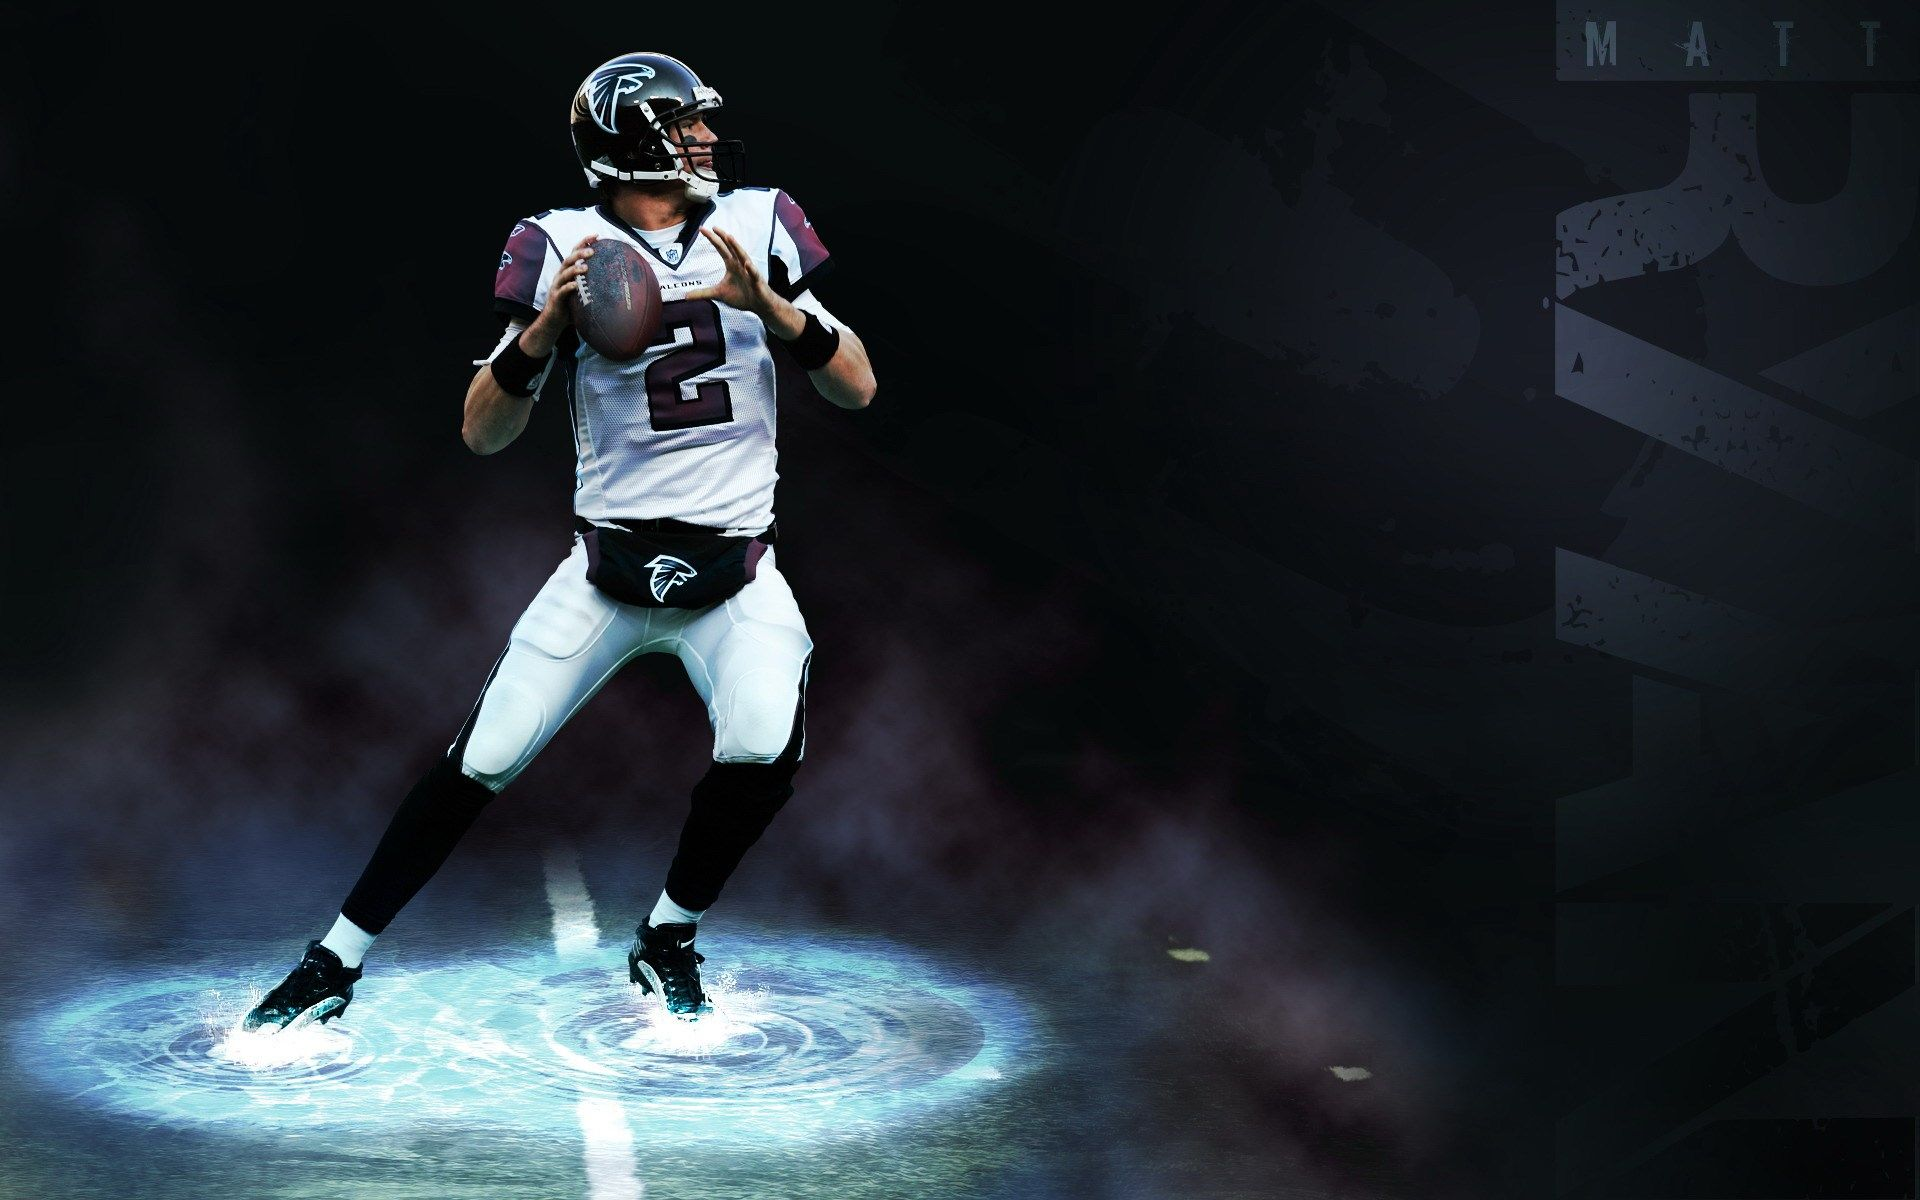 Nfl Wallpapers Hd Backgrounds Nfl Football Wallpaper Football Wallpaper Nfl